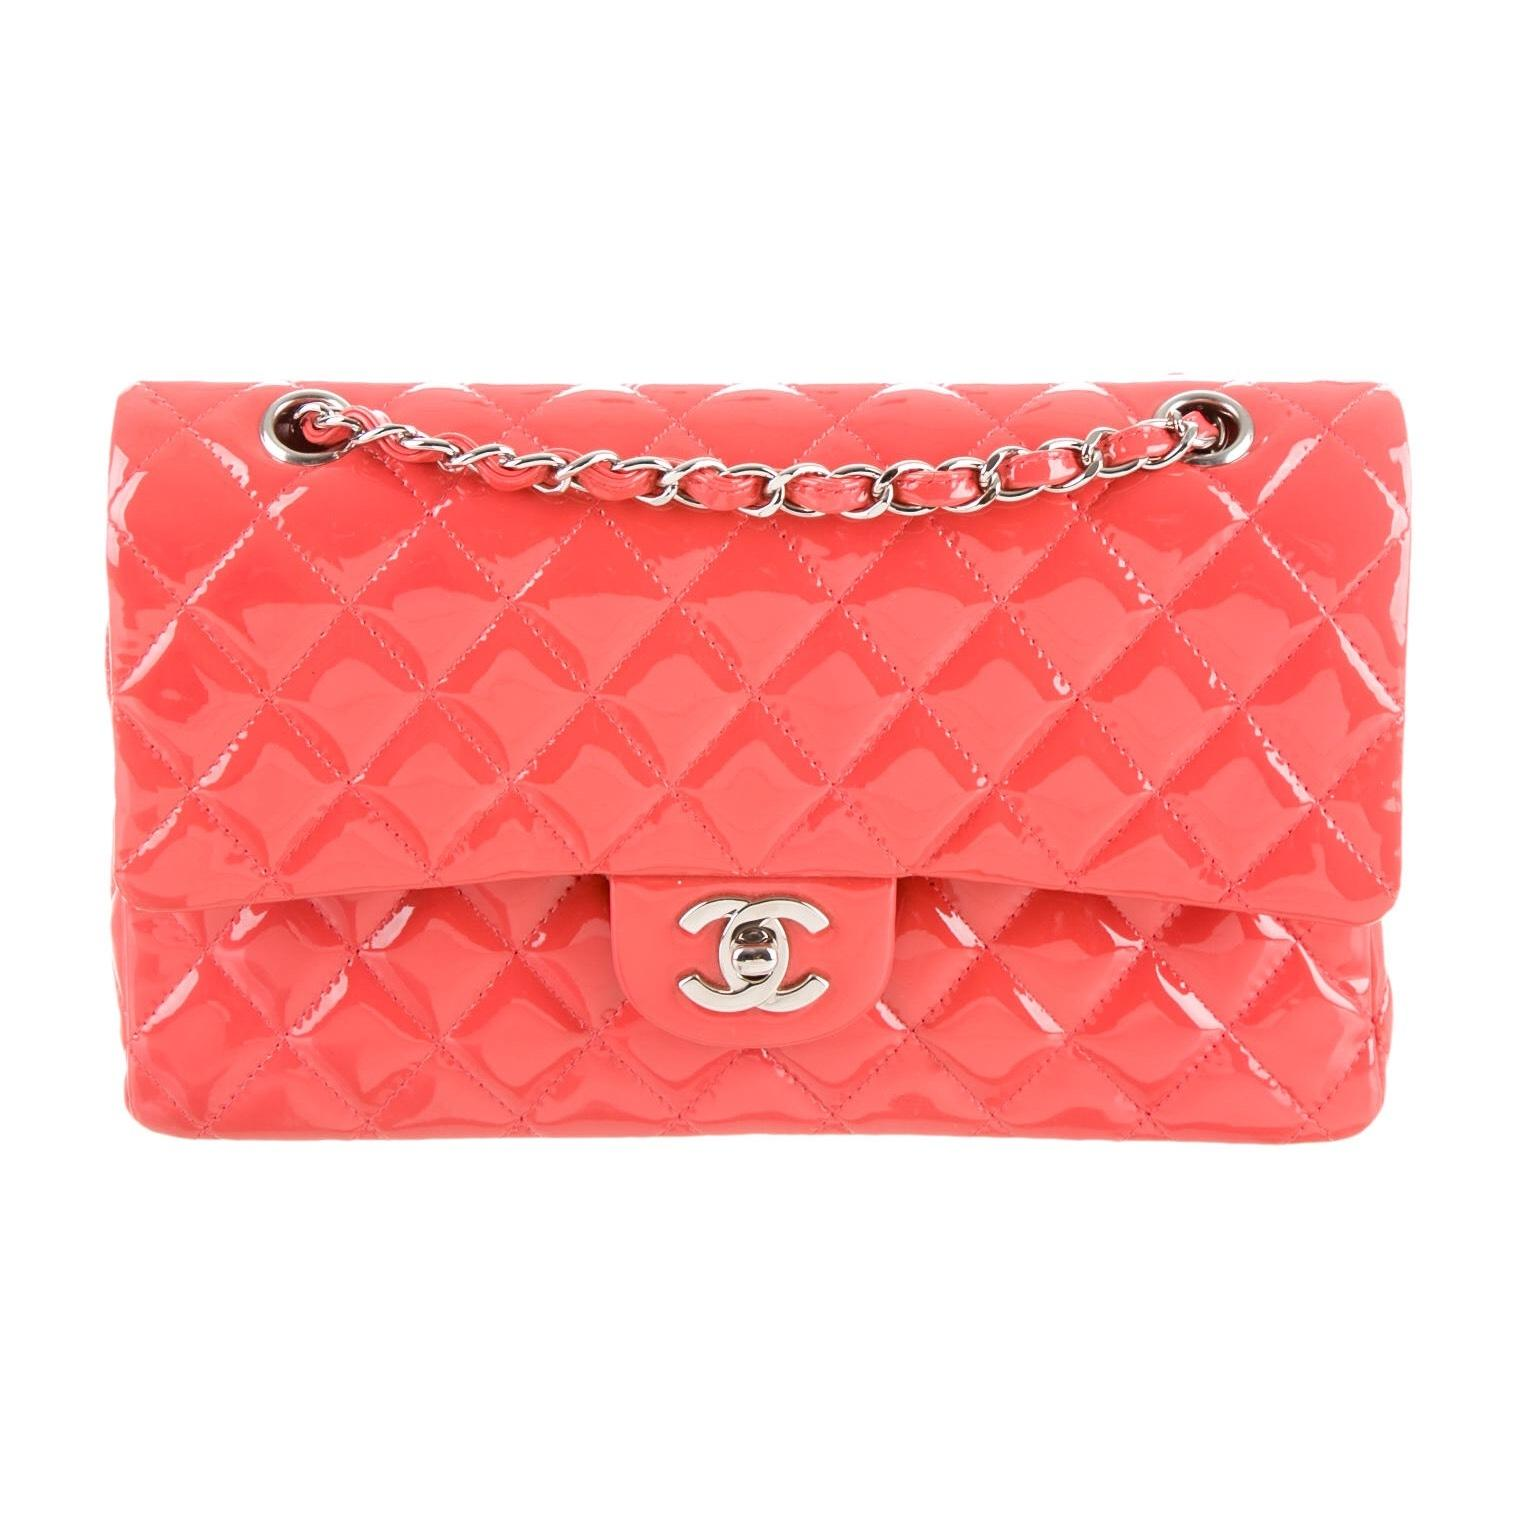 Chanel Classic Medium Double Flap In Coral Patent Leather Shoulder ...